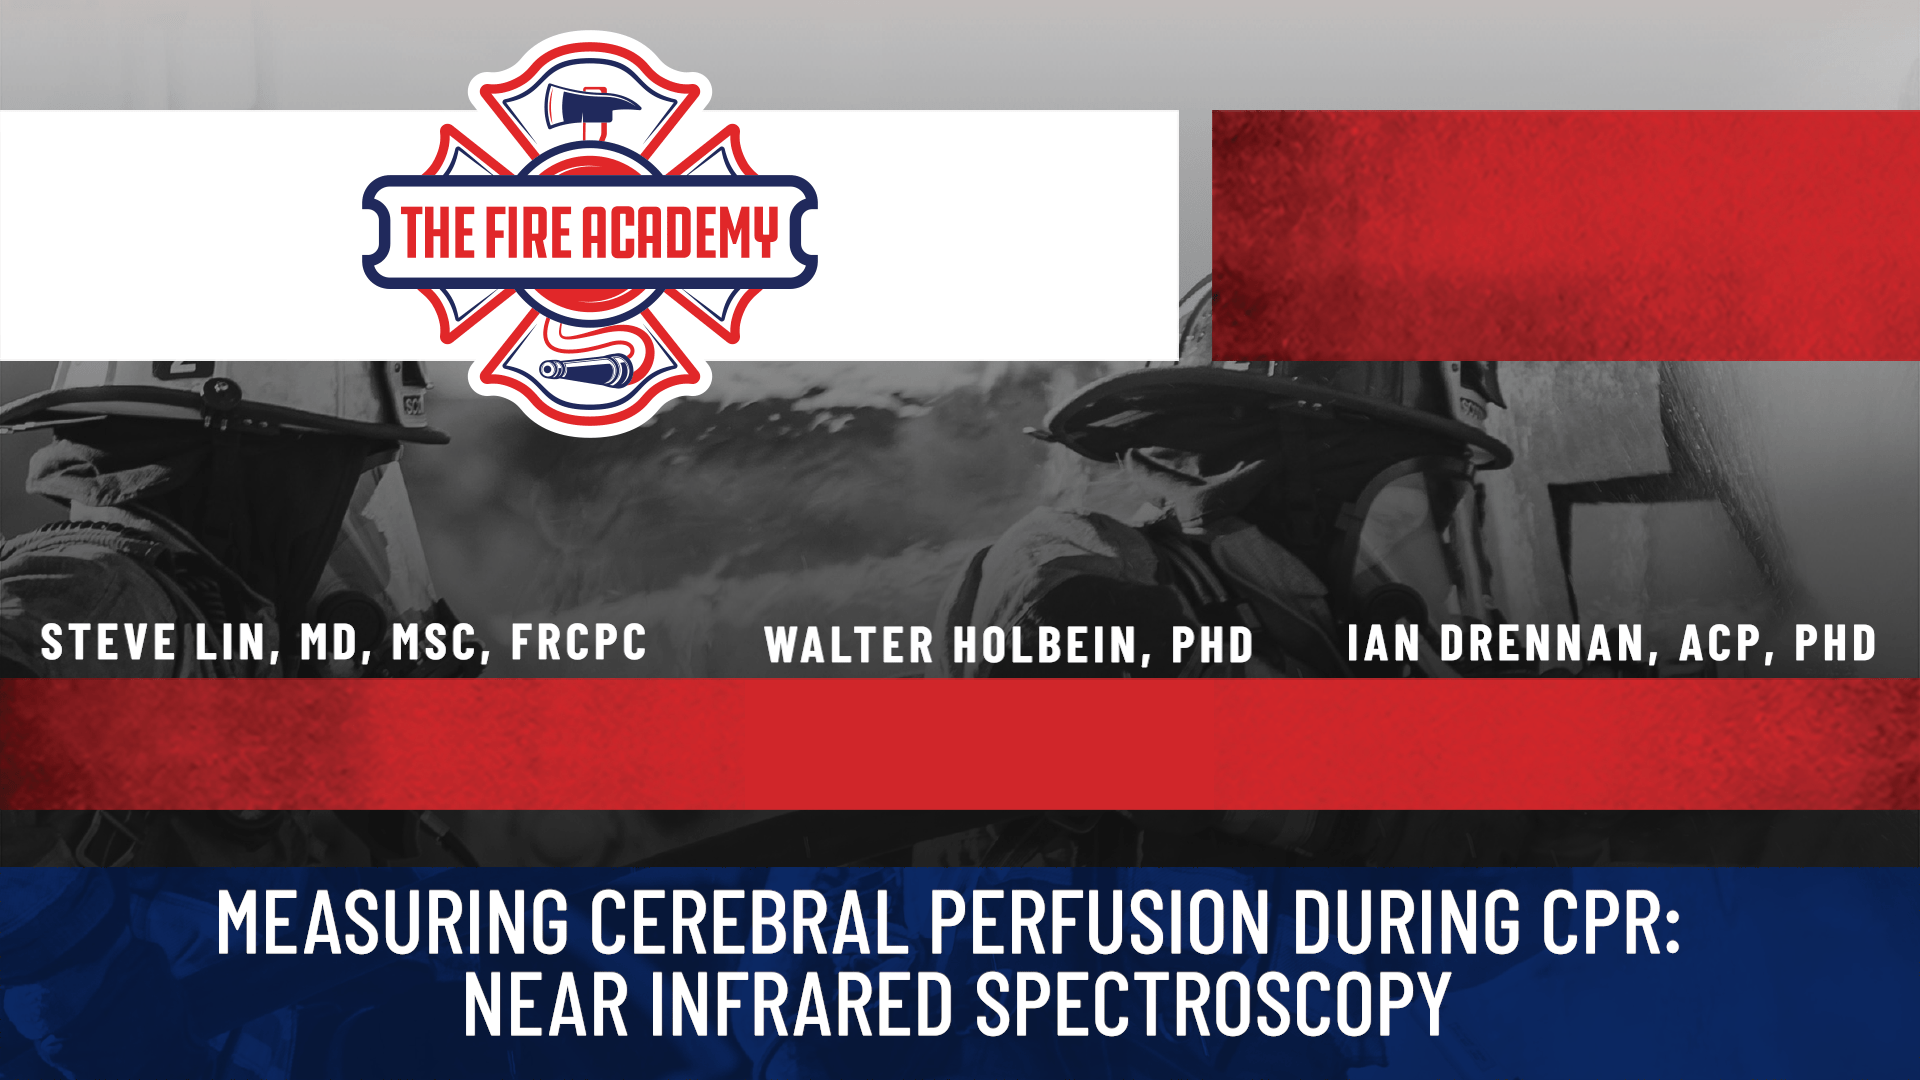 Measuring Cerebral Perfusion During CPR: Near Infrared Spectroscopy